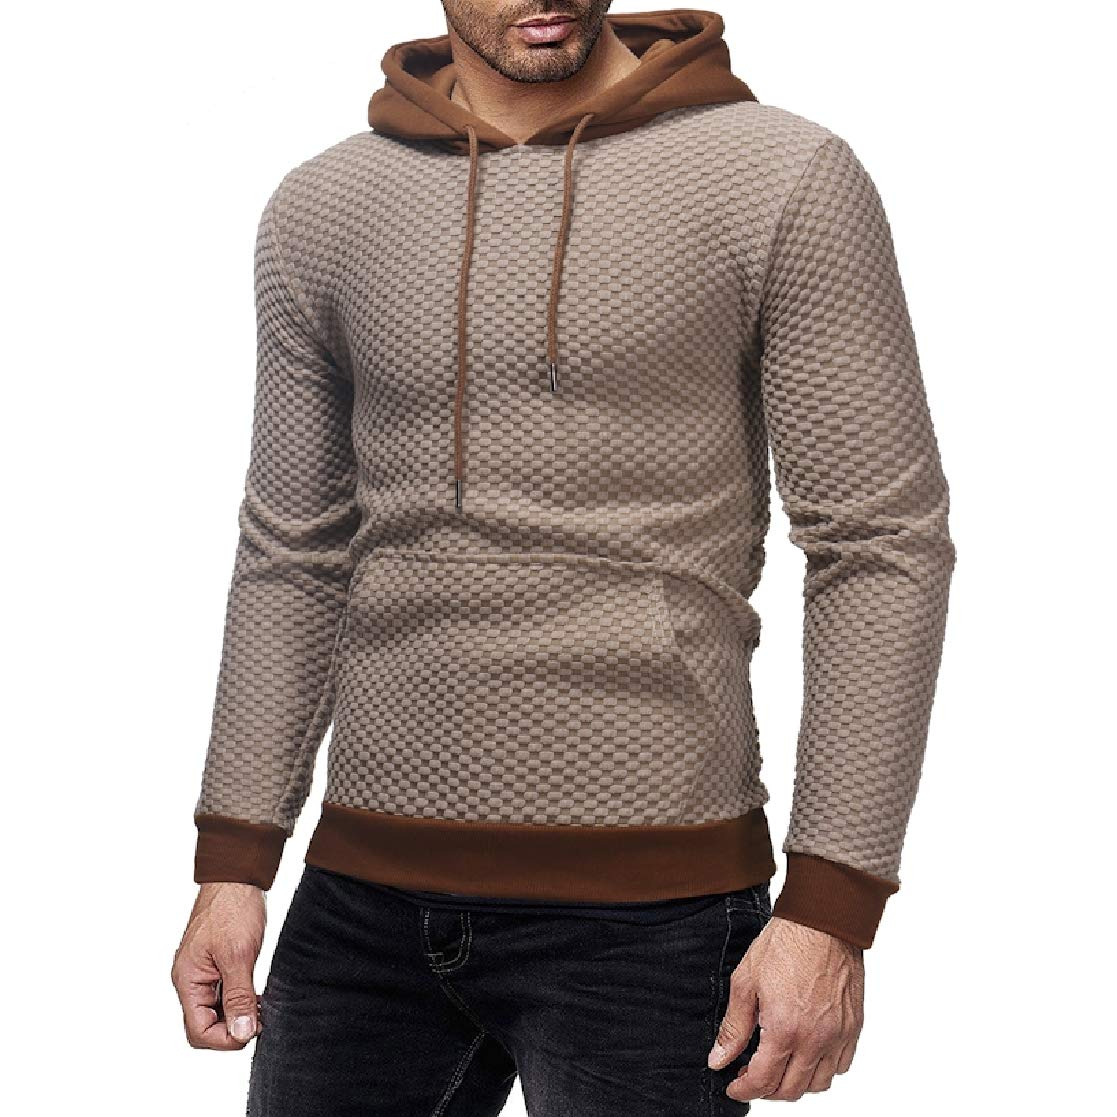 YUNY Mens Simple Hooded Outwear Plaid Big Pocket Pullover Tracksuit Top Off-White M